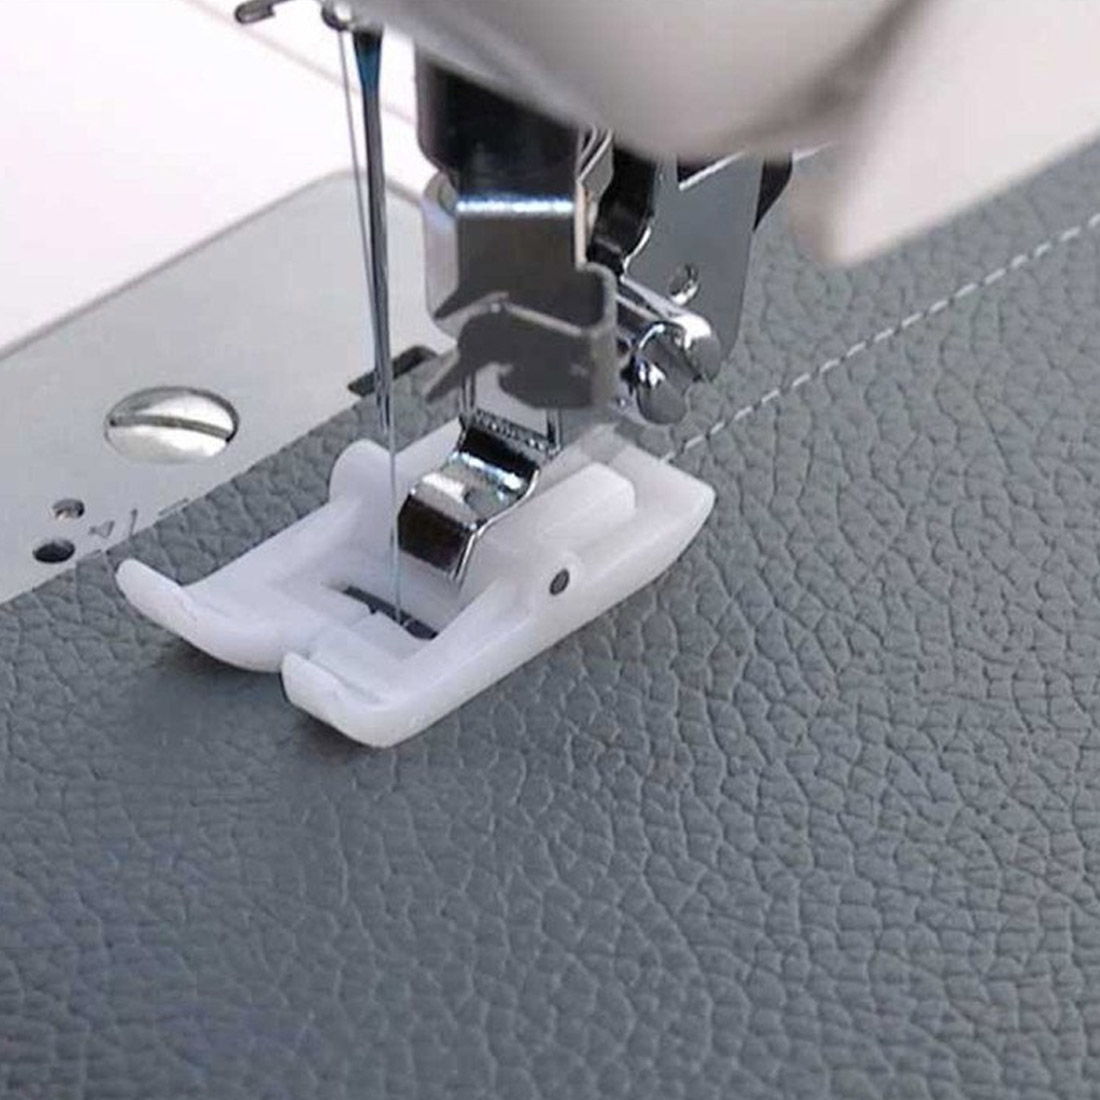 Foot Snap On Sewing Presser Foot Leather Pressure Foot White Non-stick Pressure Foot Home Sewing Machine Accessories